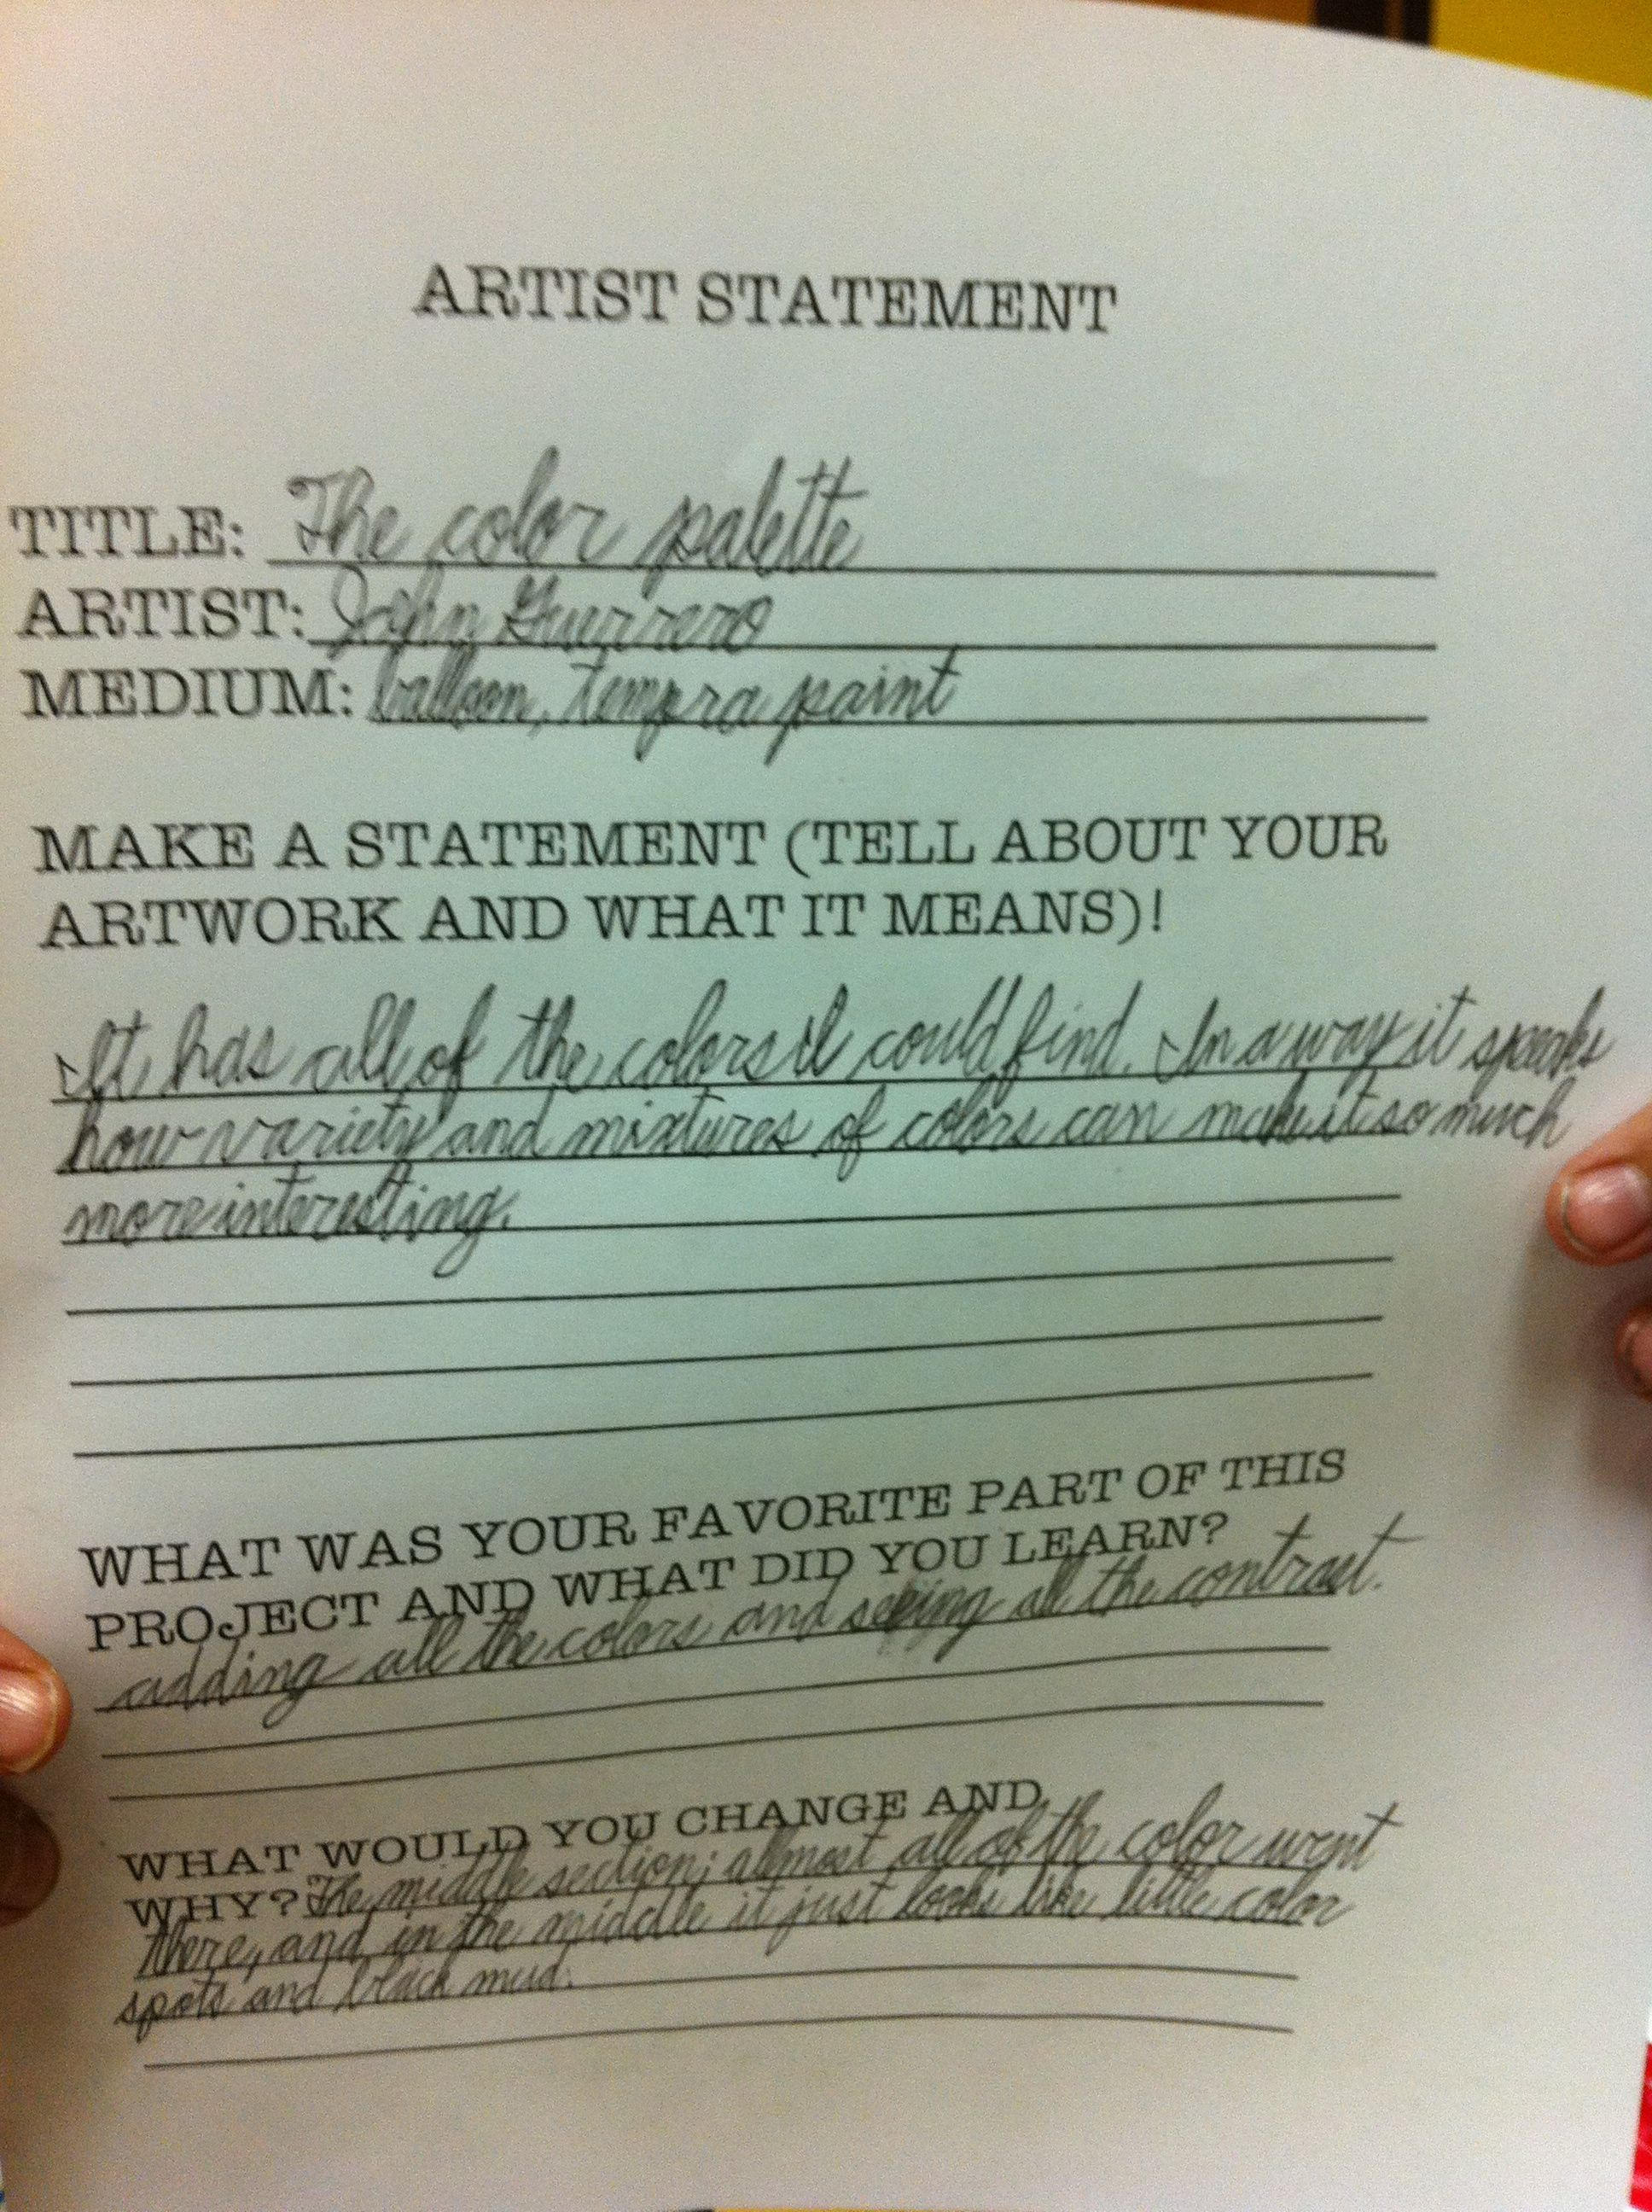 Another artist statement for abstract expressionism art